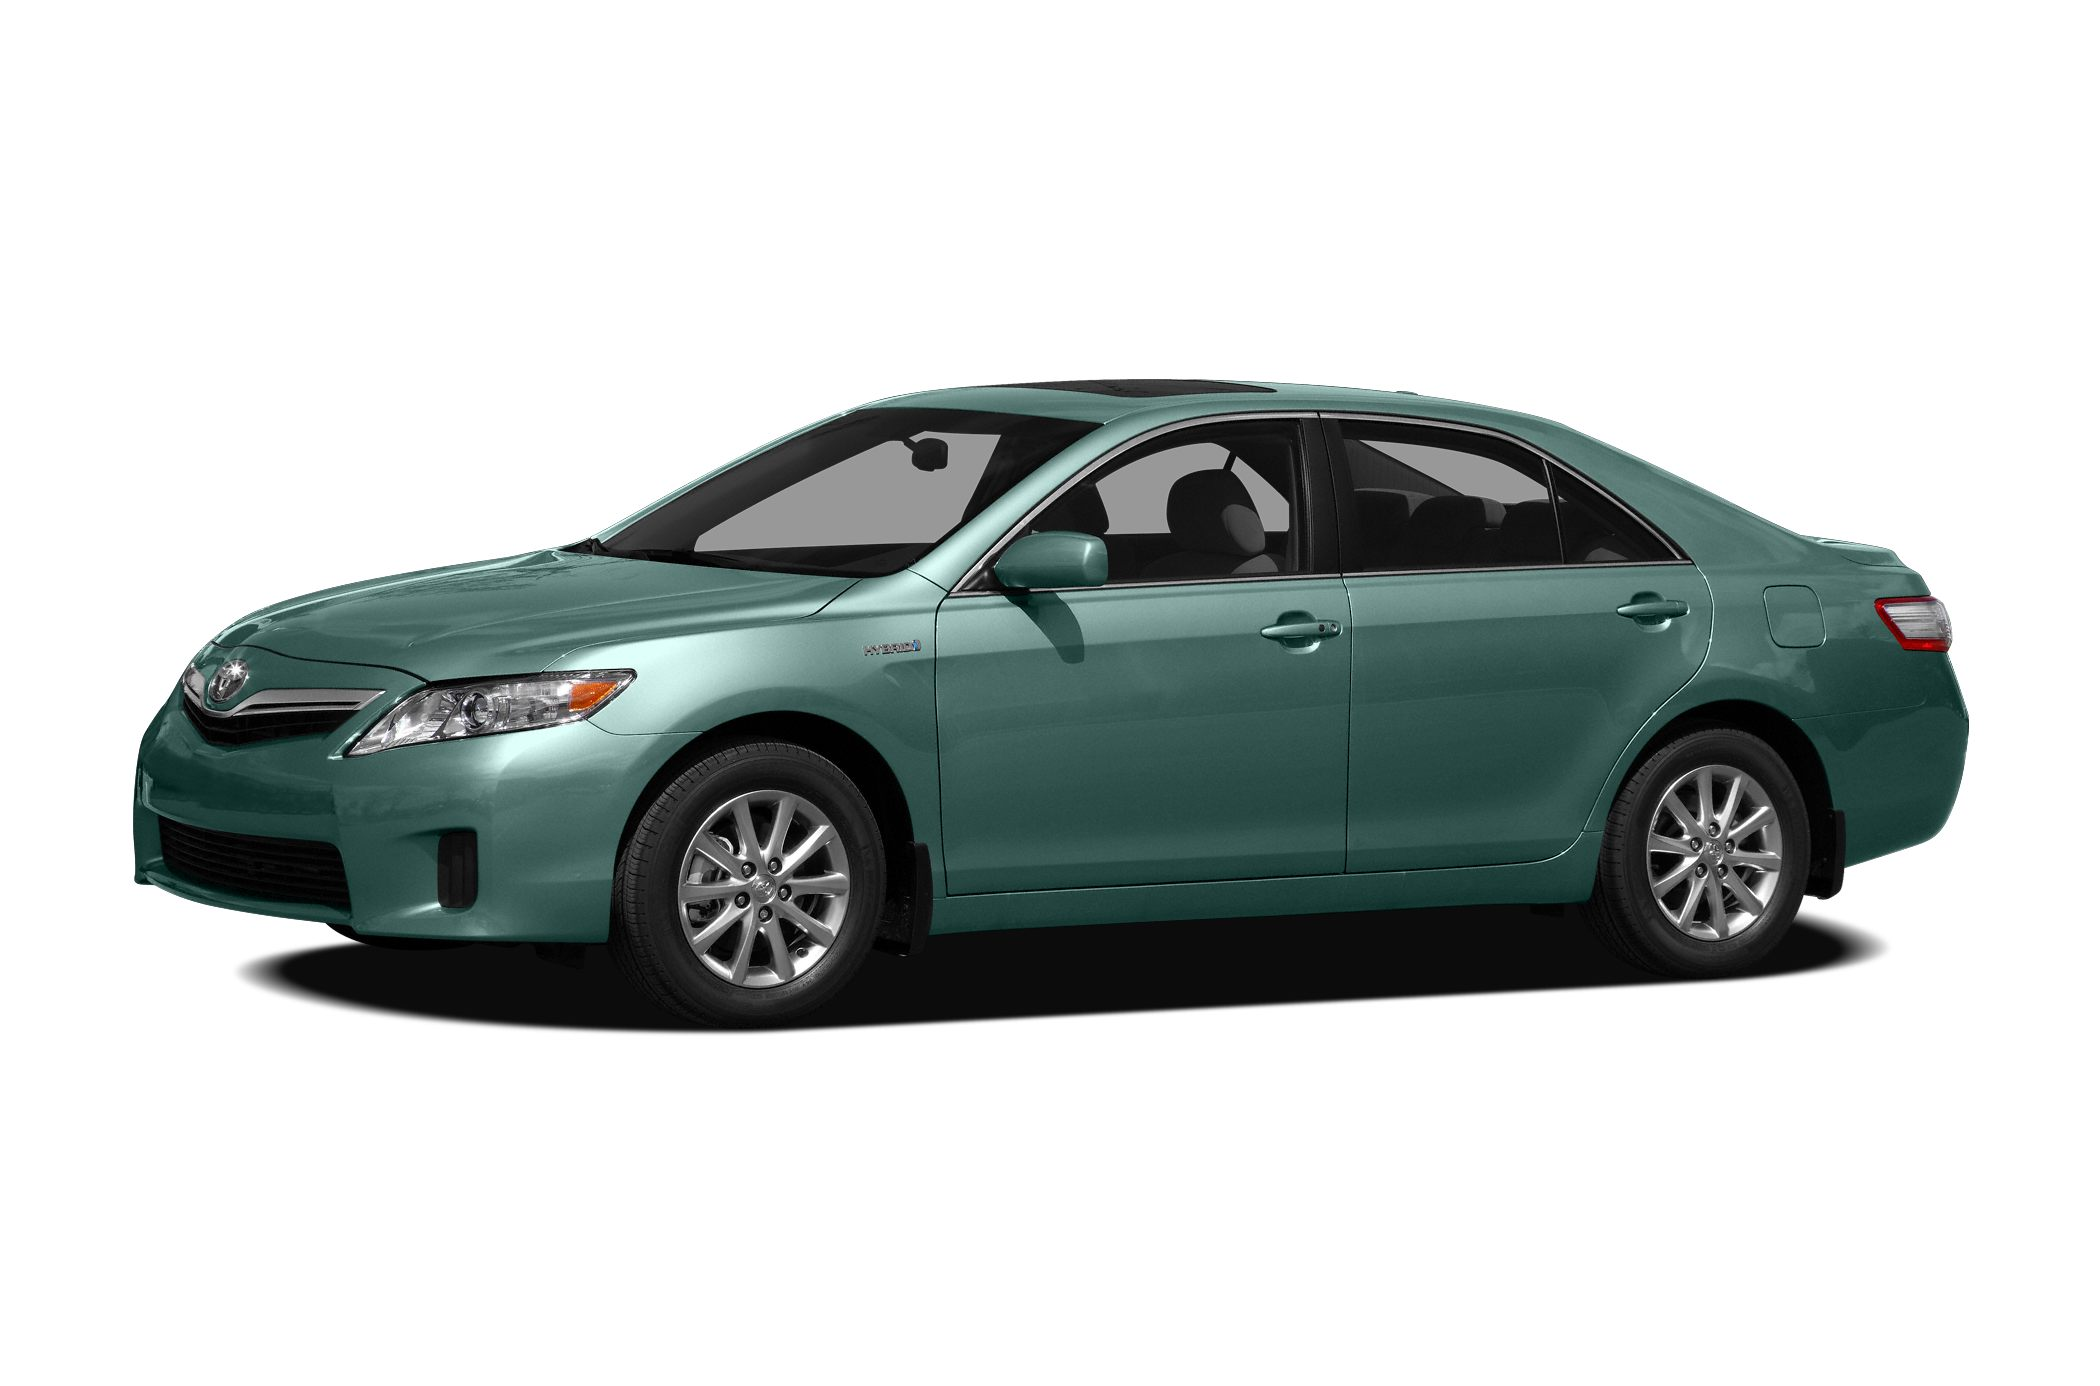 2011 Toyota Camry Hybrid Sedan for sale in La Crescenta for $19,888 with 34,428 miles